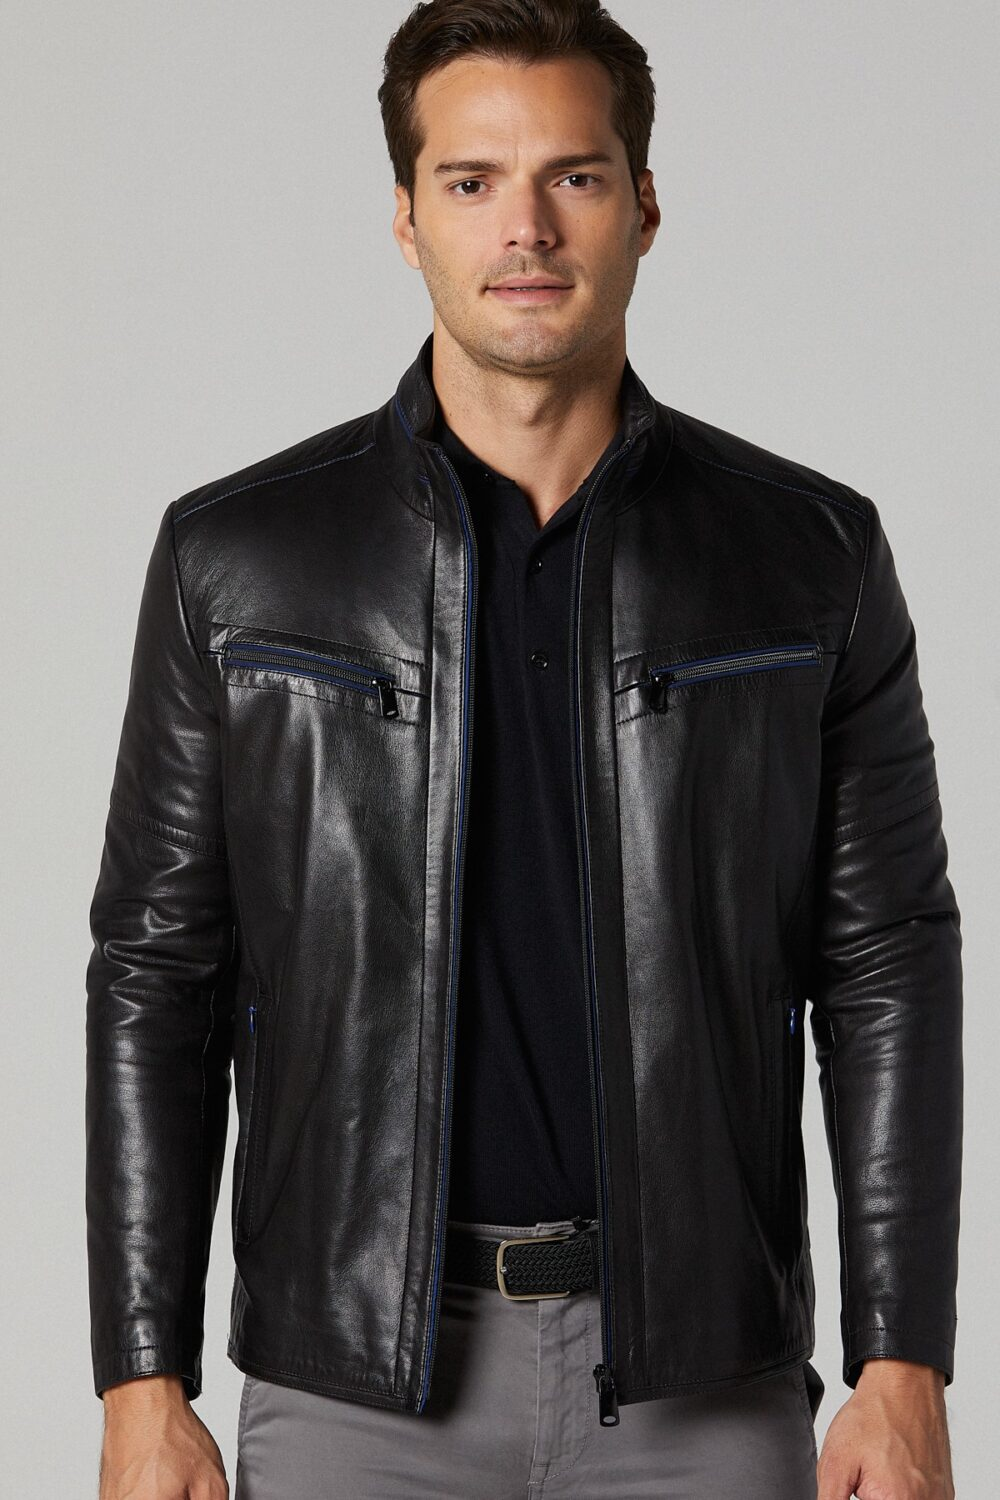 Custom Leather Jackets Nyc